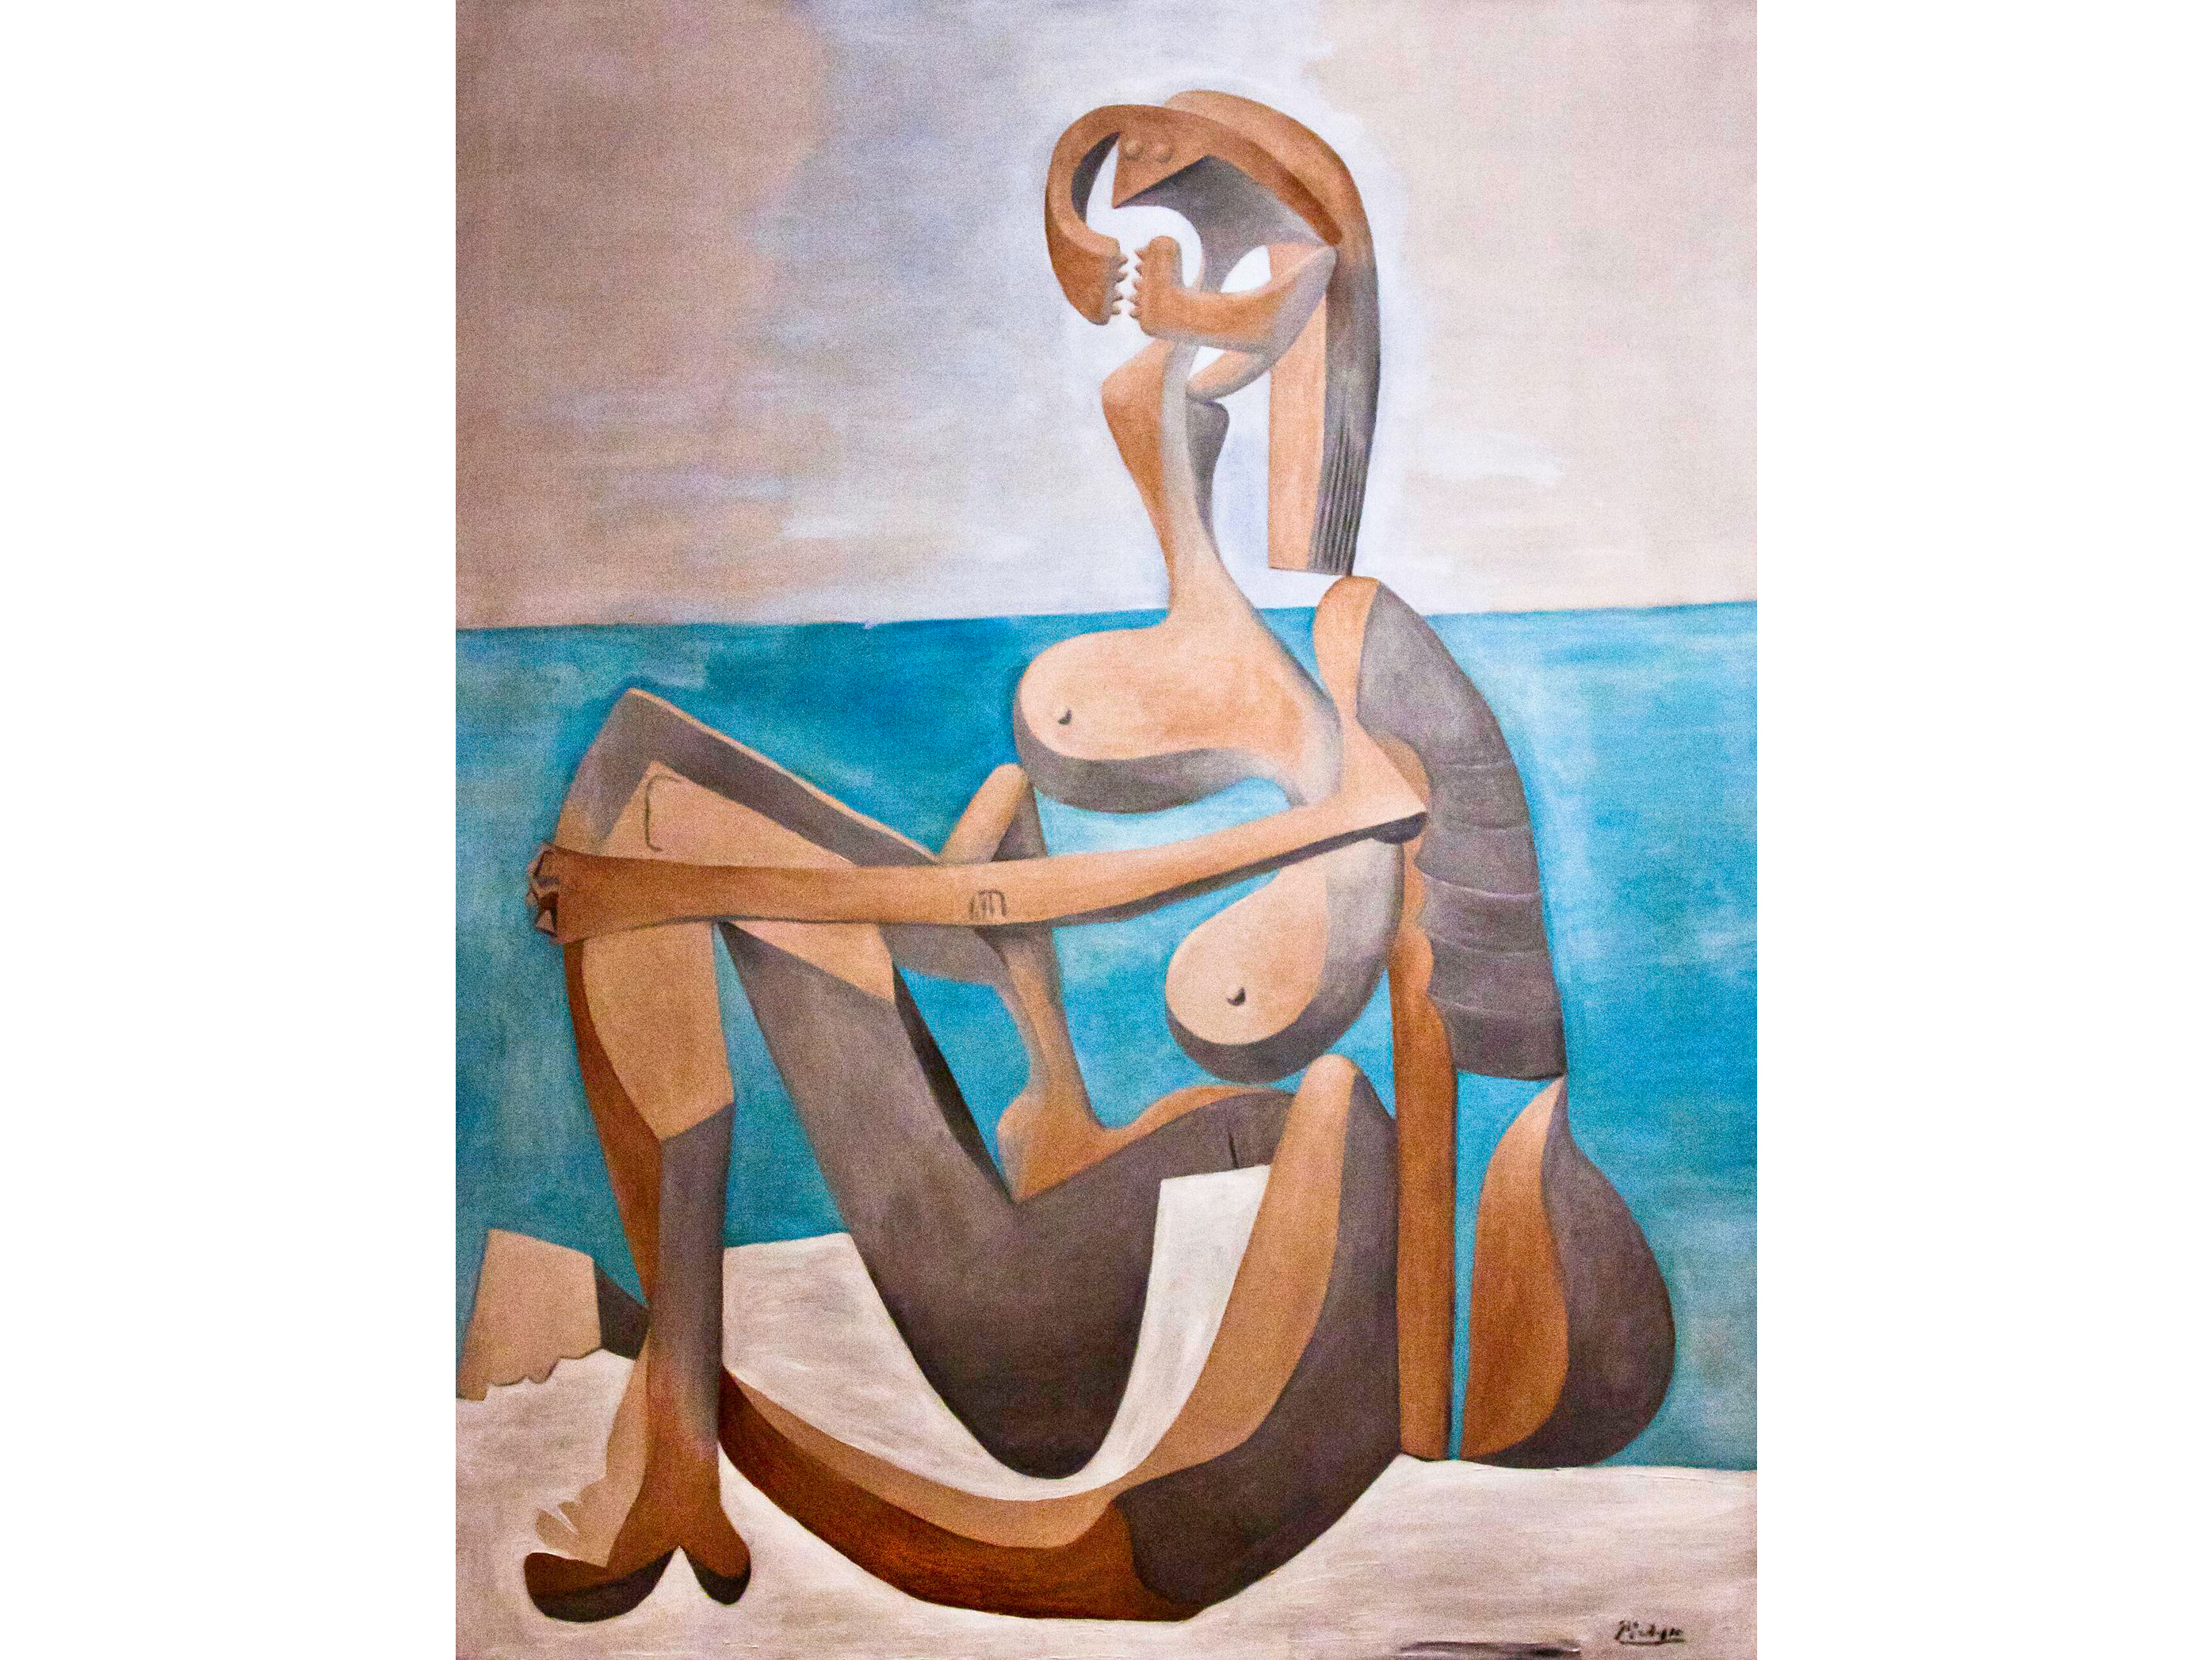 Seated Bather (1930), Pablo Picasso